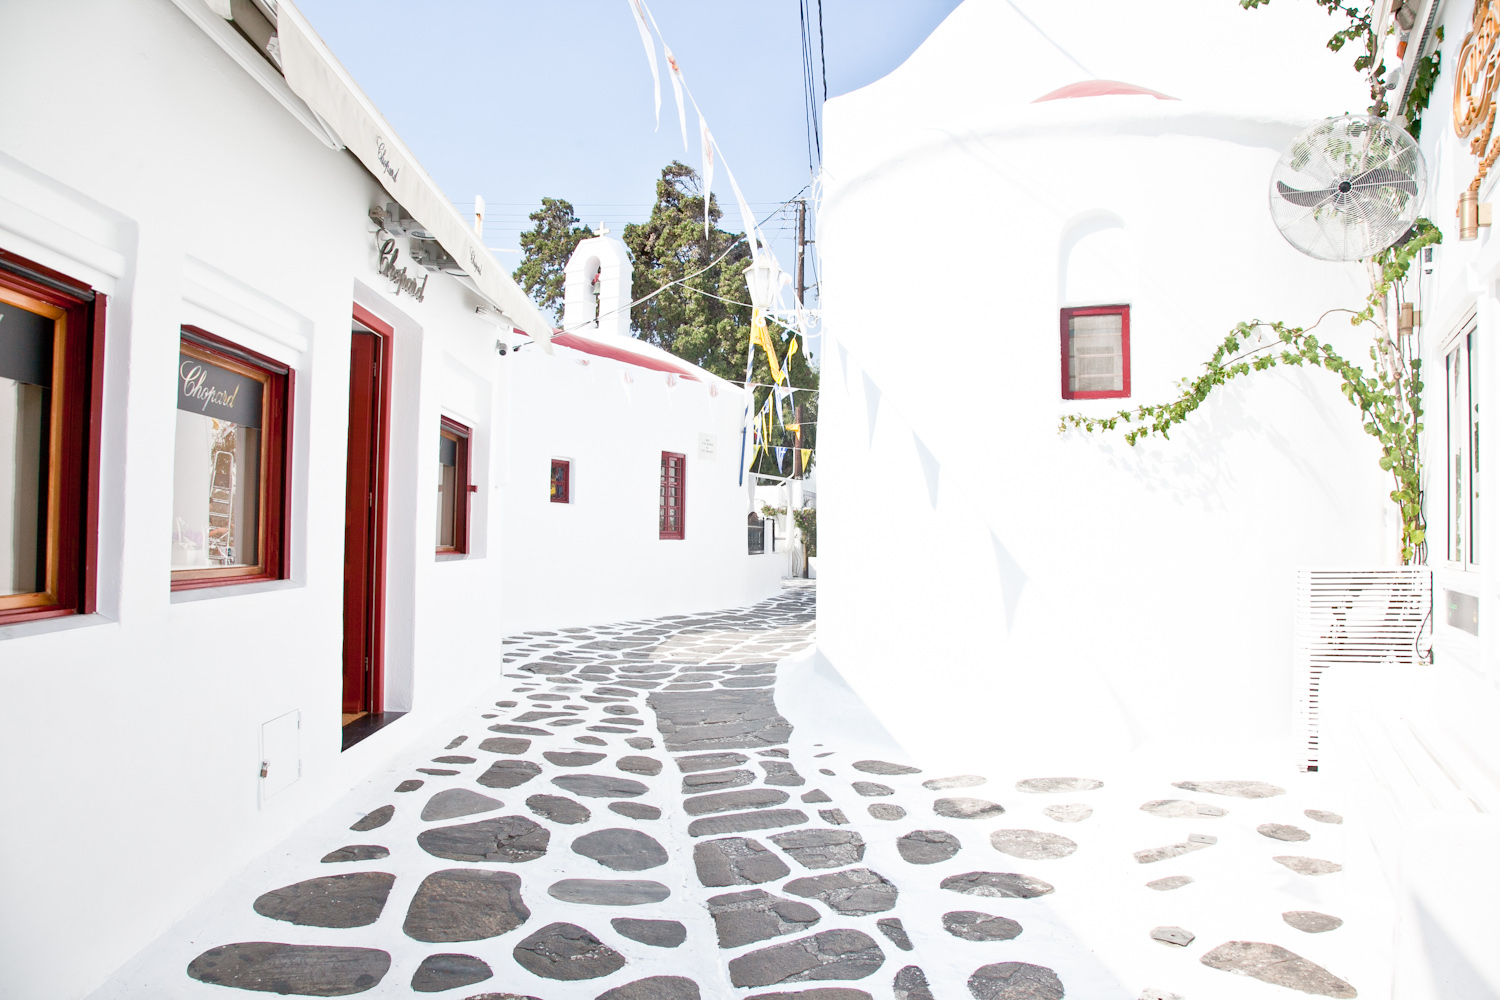 IMG_3847-mykonos-greece-cruise-day-trip-travel-trisa-taro.jpg